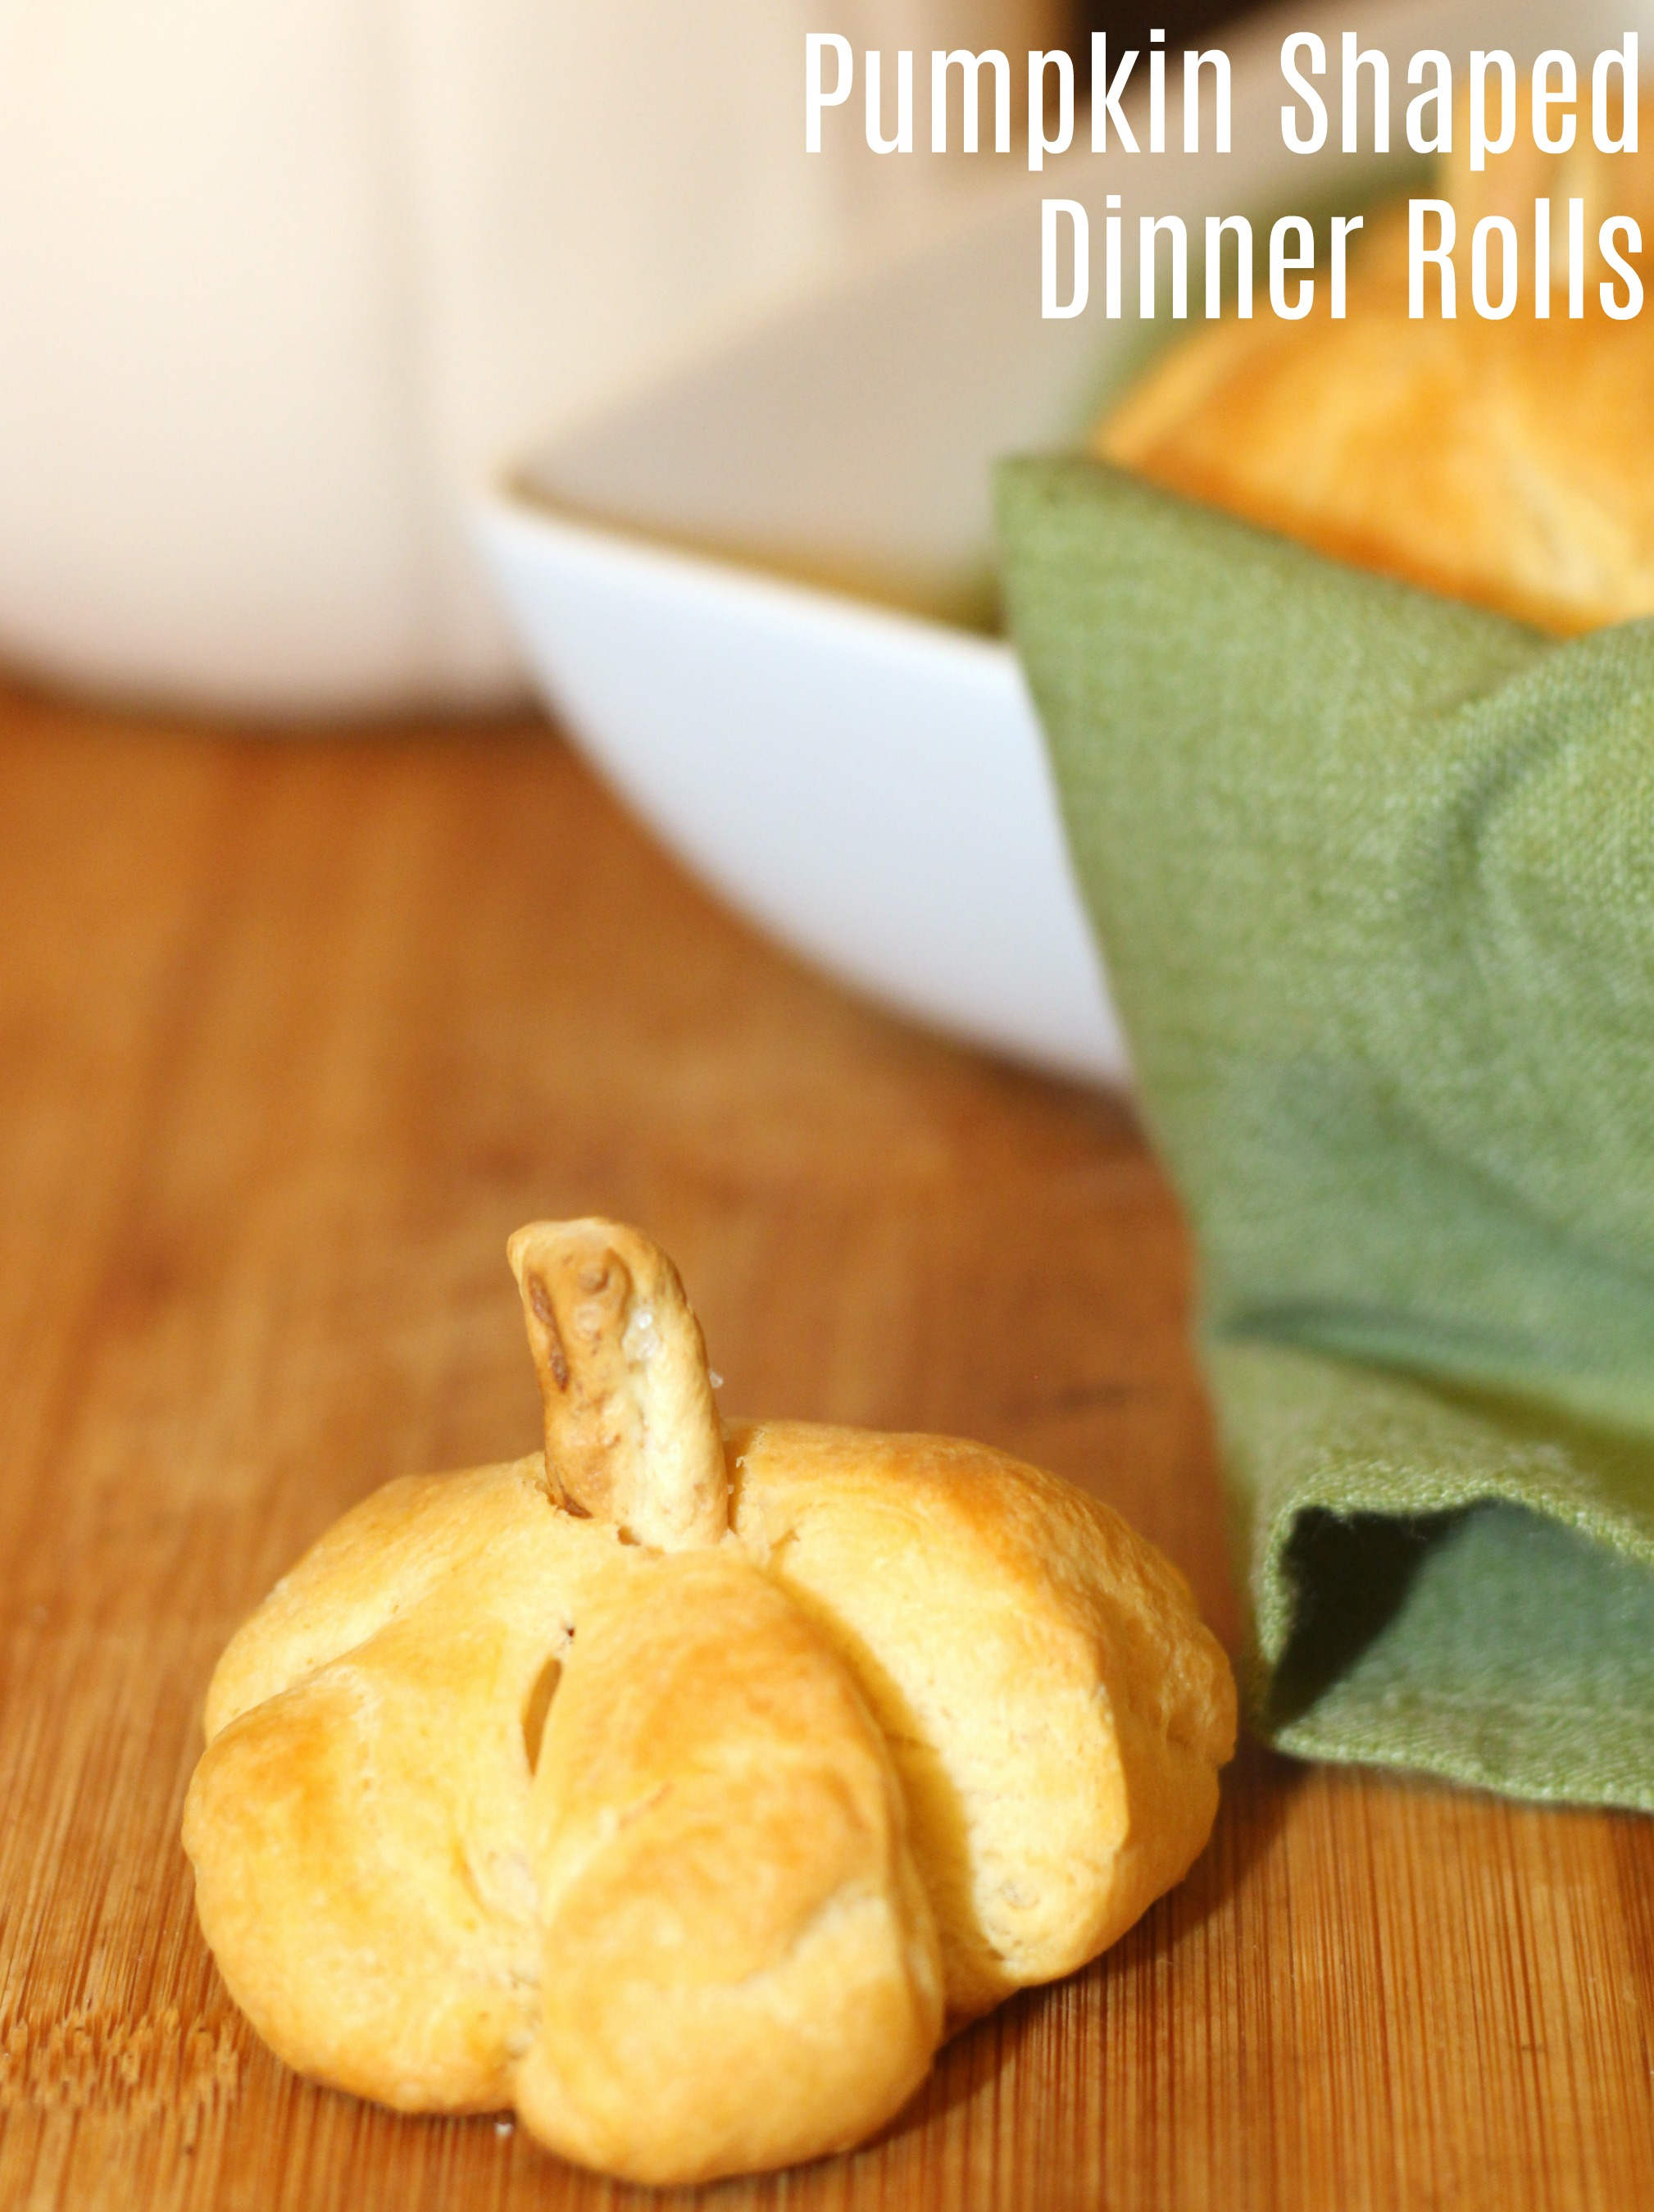 Pumpkin Shaped Dinner Rolls